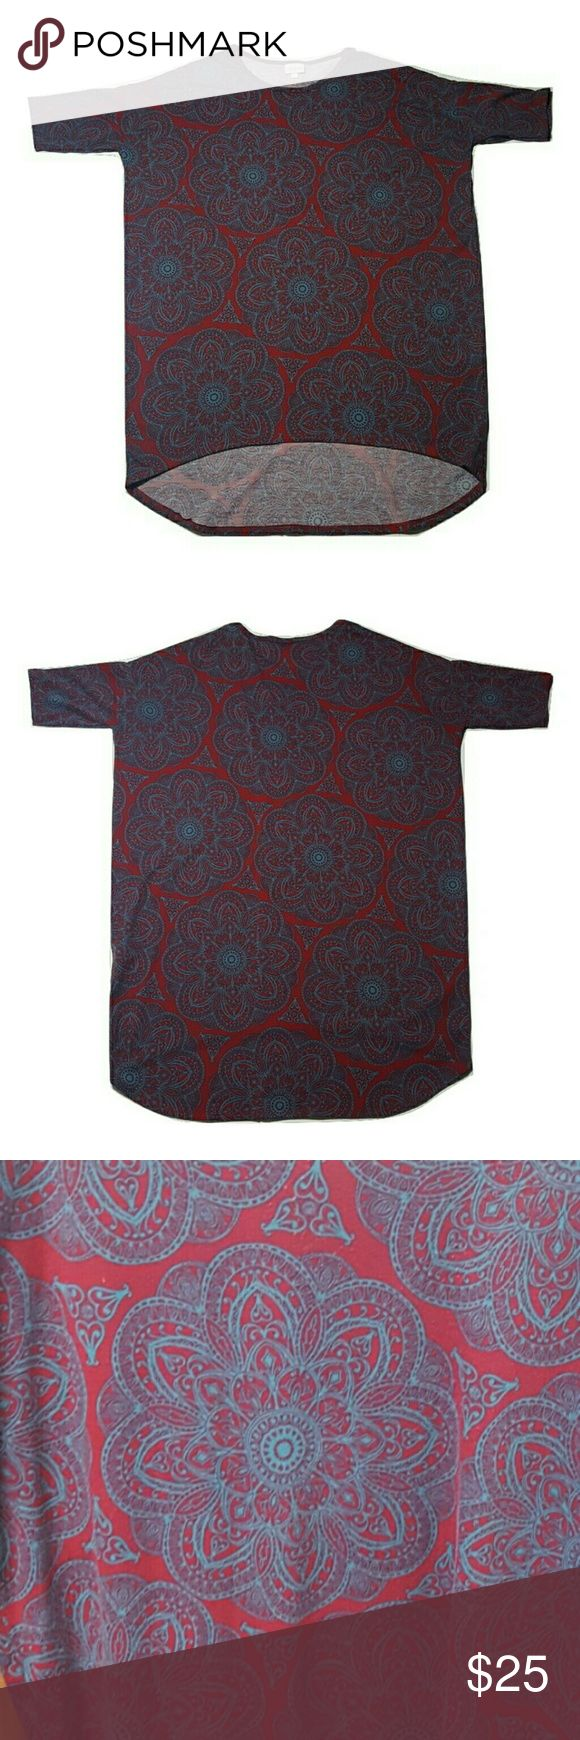 Lularoe Shirt. EUC. Not exactly sure if it's a Classic Tee or an Irma. Cute print! Size M- but as you can tell, it is rather large. High low feature goes great with a pair of leggings!! LuLaRoe Tops